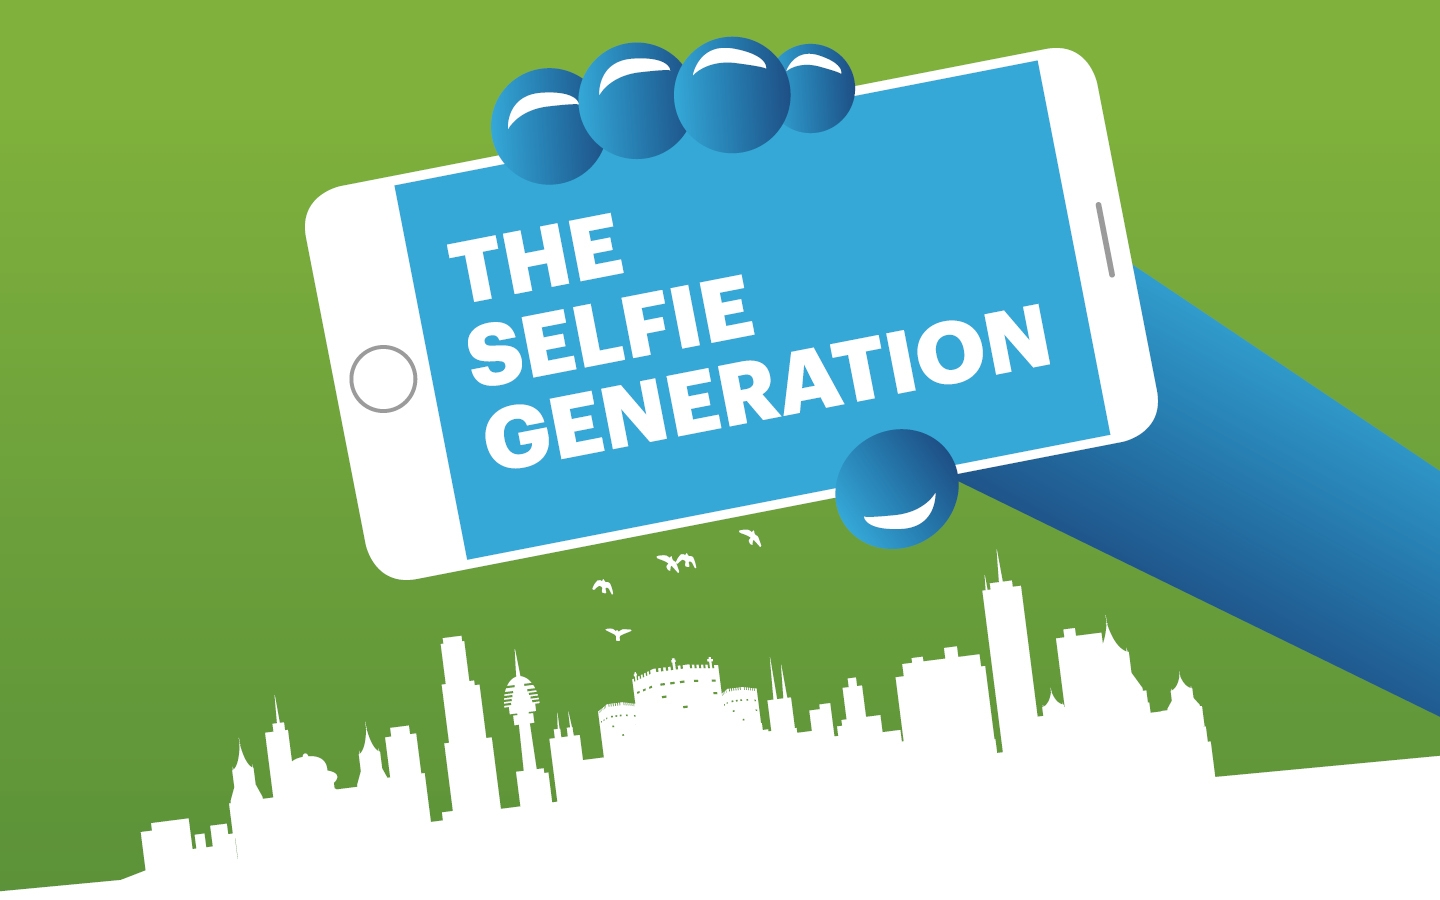 The selfie generation